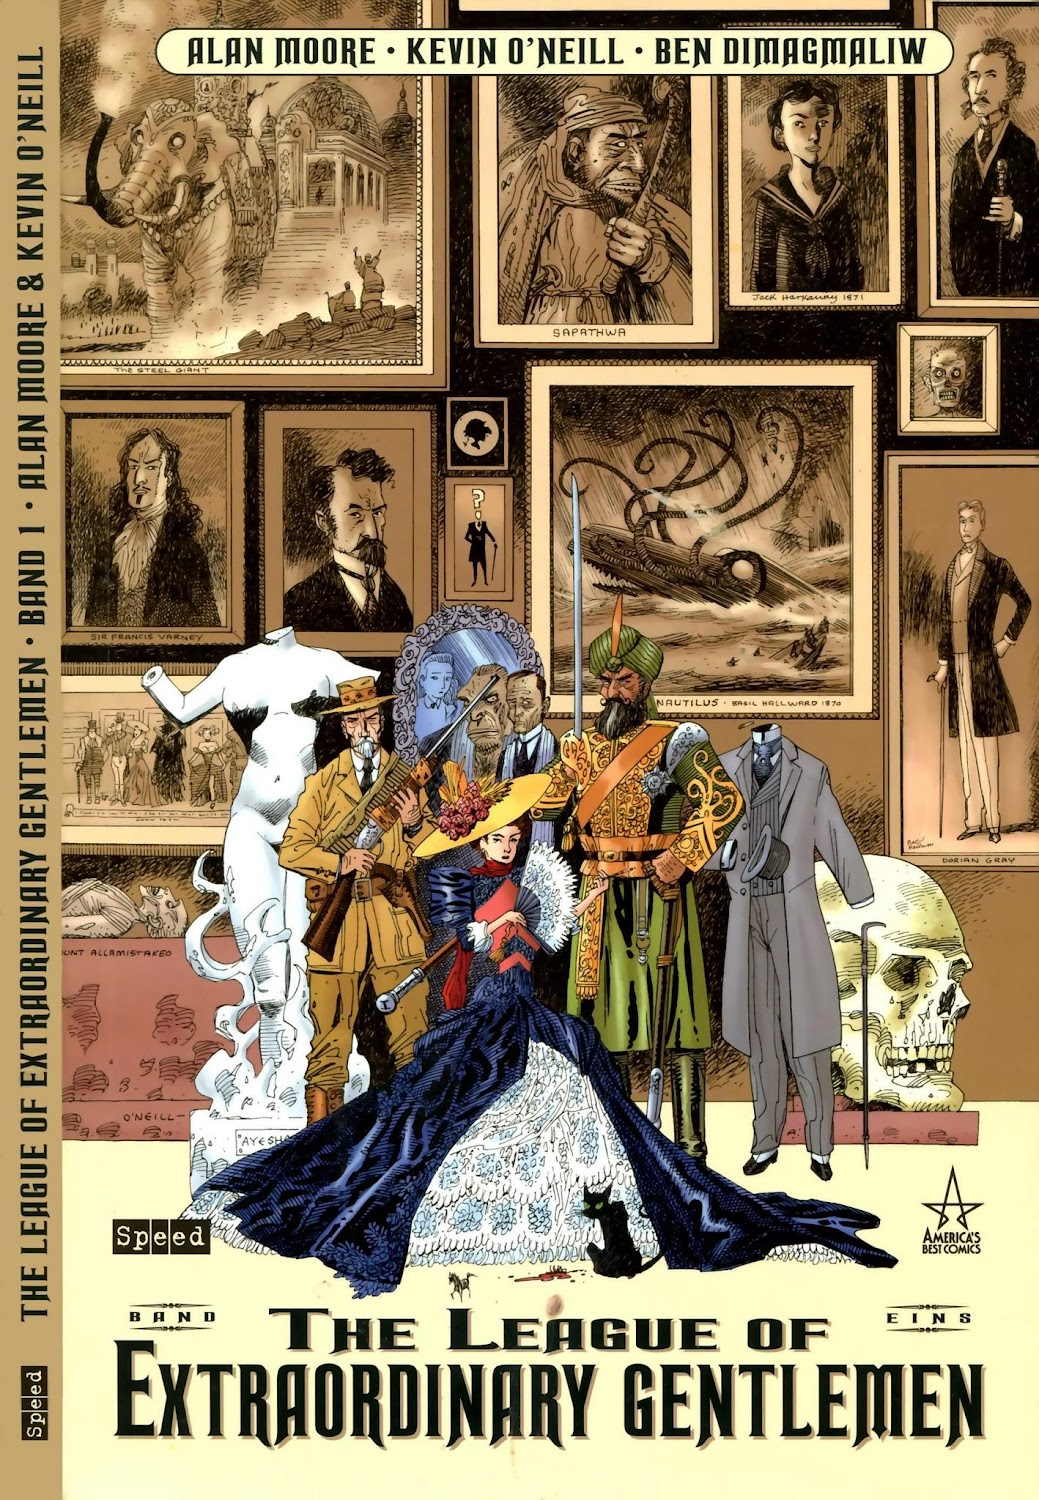 Comix Load The League Of Extraordinary Gentlemen 2003 Komplett Comix Load In